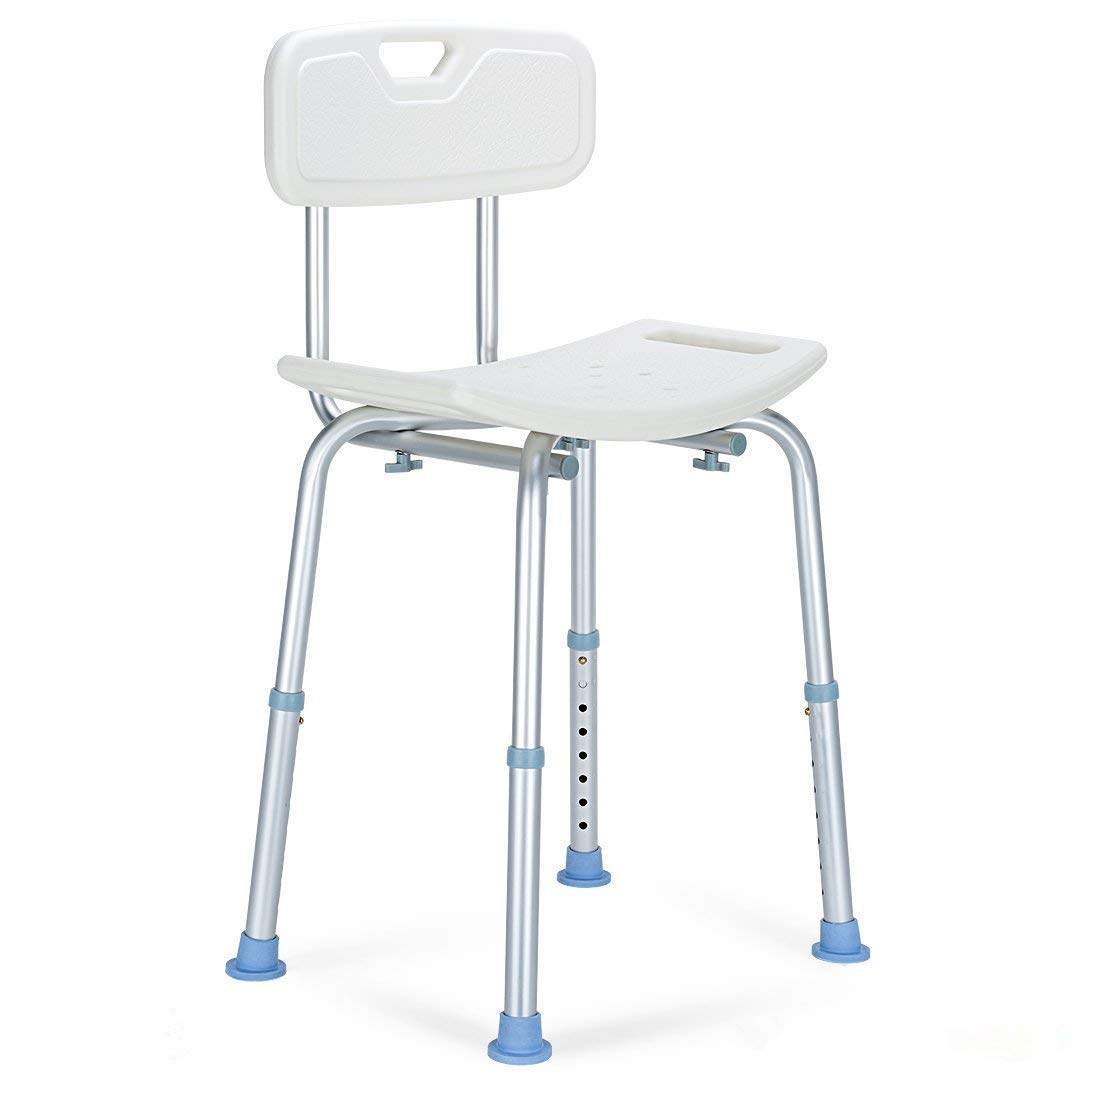 OasisSpace Shower Chair with Back, Heavy Duty Adjustable Shower Seat Stool - Medical Tool Free Anti-Slip Bathtub Seat Bench Lightweight and Durable for Elderly, Senior, Handicap, Disabled